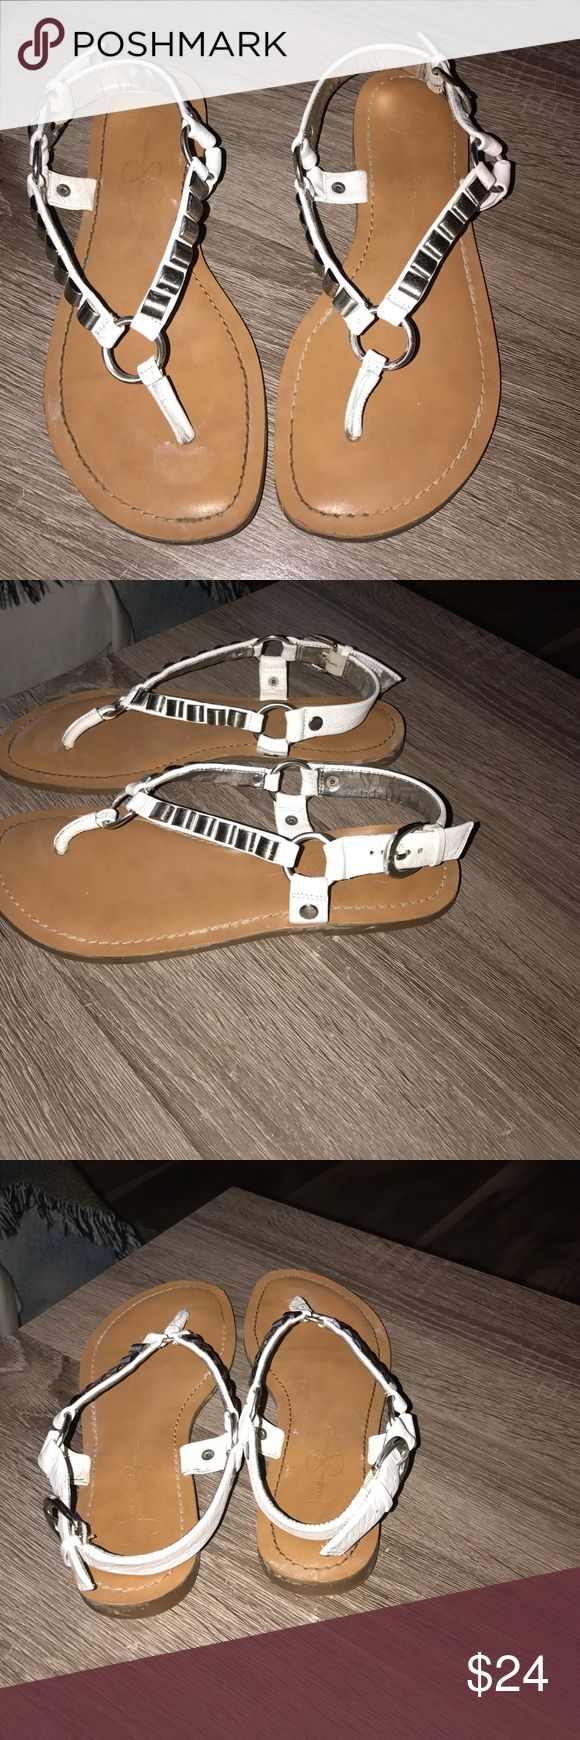 These are a pair of Jessica Simpson sandals These are a pair of used Jessica Simpson sandals super cute and unique 💕size 7 Jessica Simpson Shoes Sandals